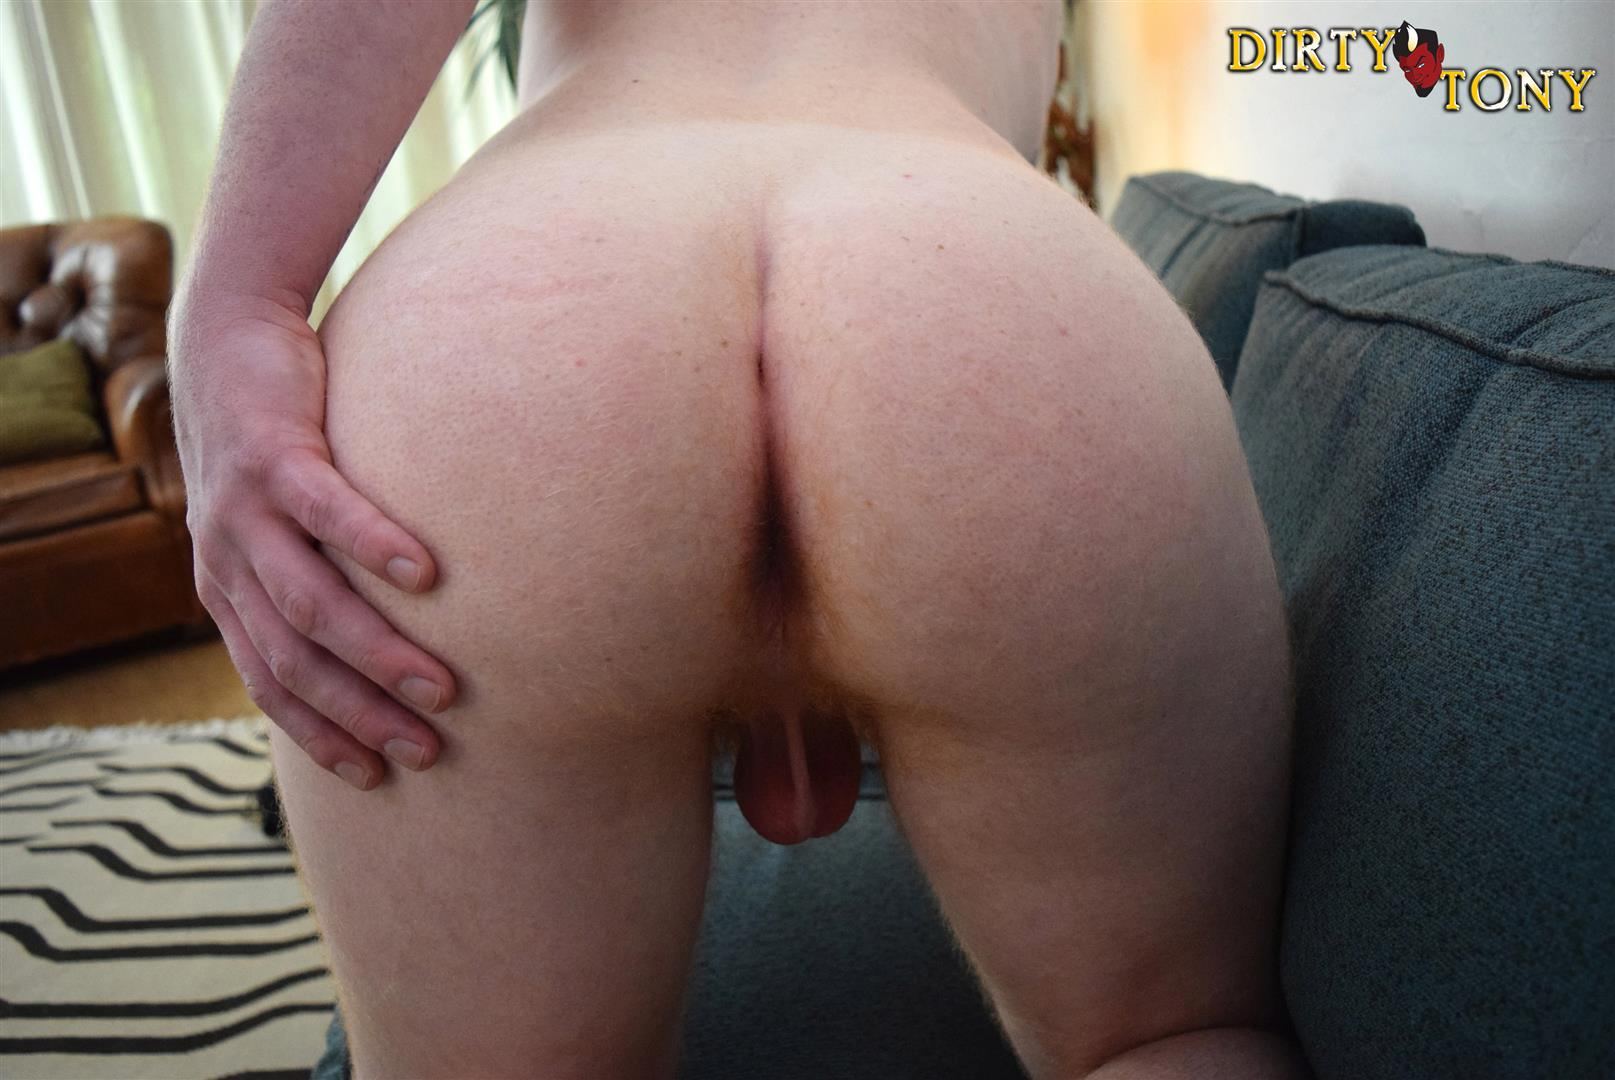 Dirty Tony Max Breeker Redheaded Twink Masturbation Amateur Gay Porn 12 Bisexual 19 Year Old Redheaded Twink Auditions For Gay Porn